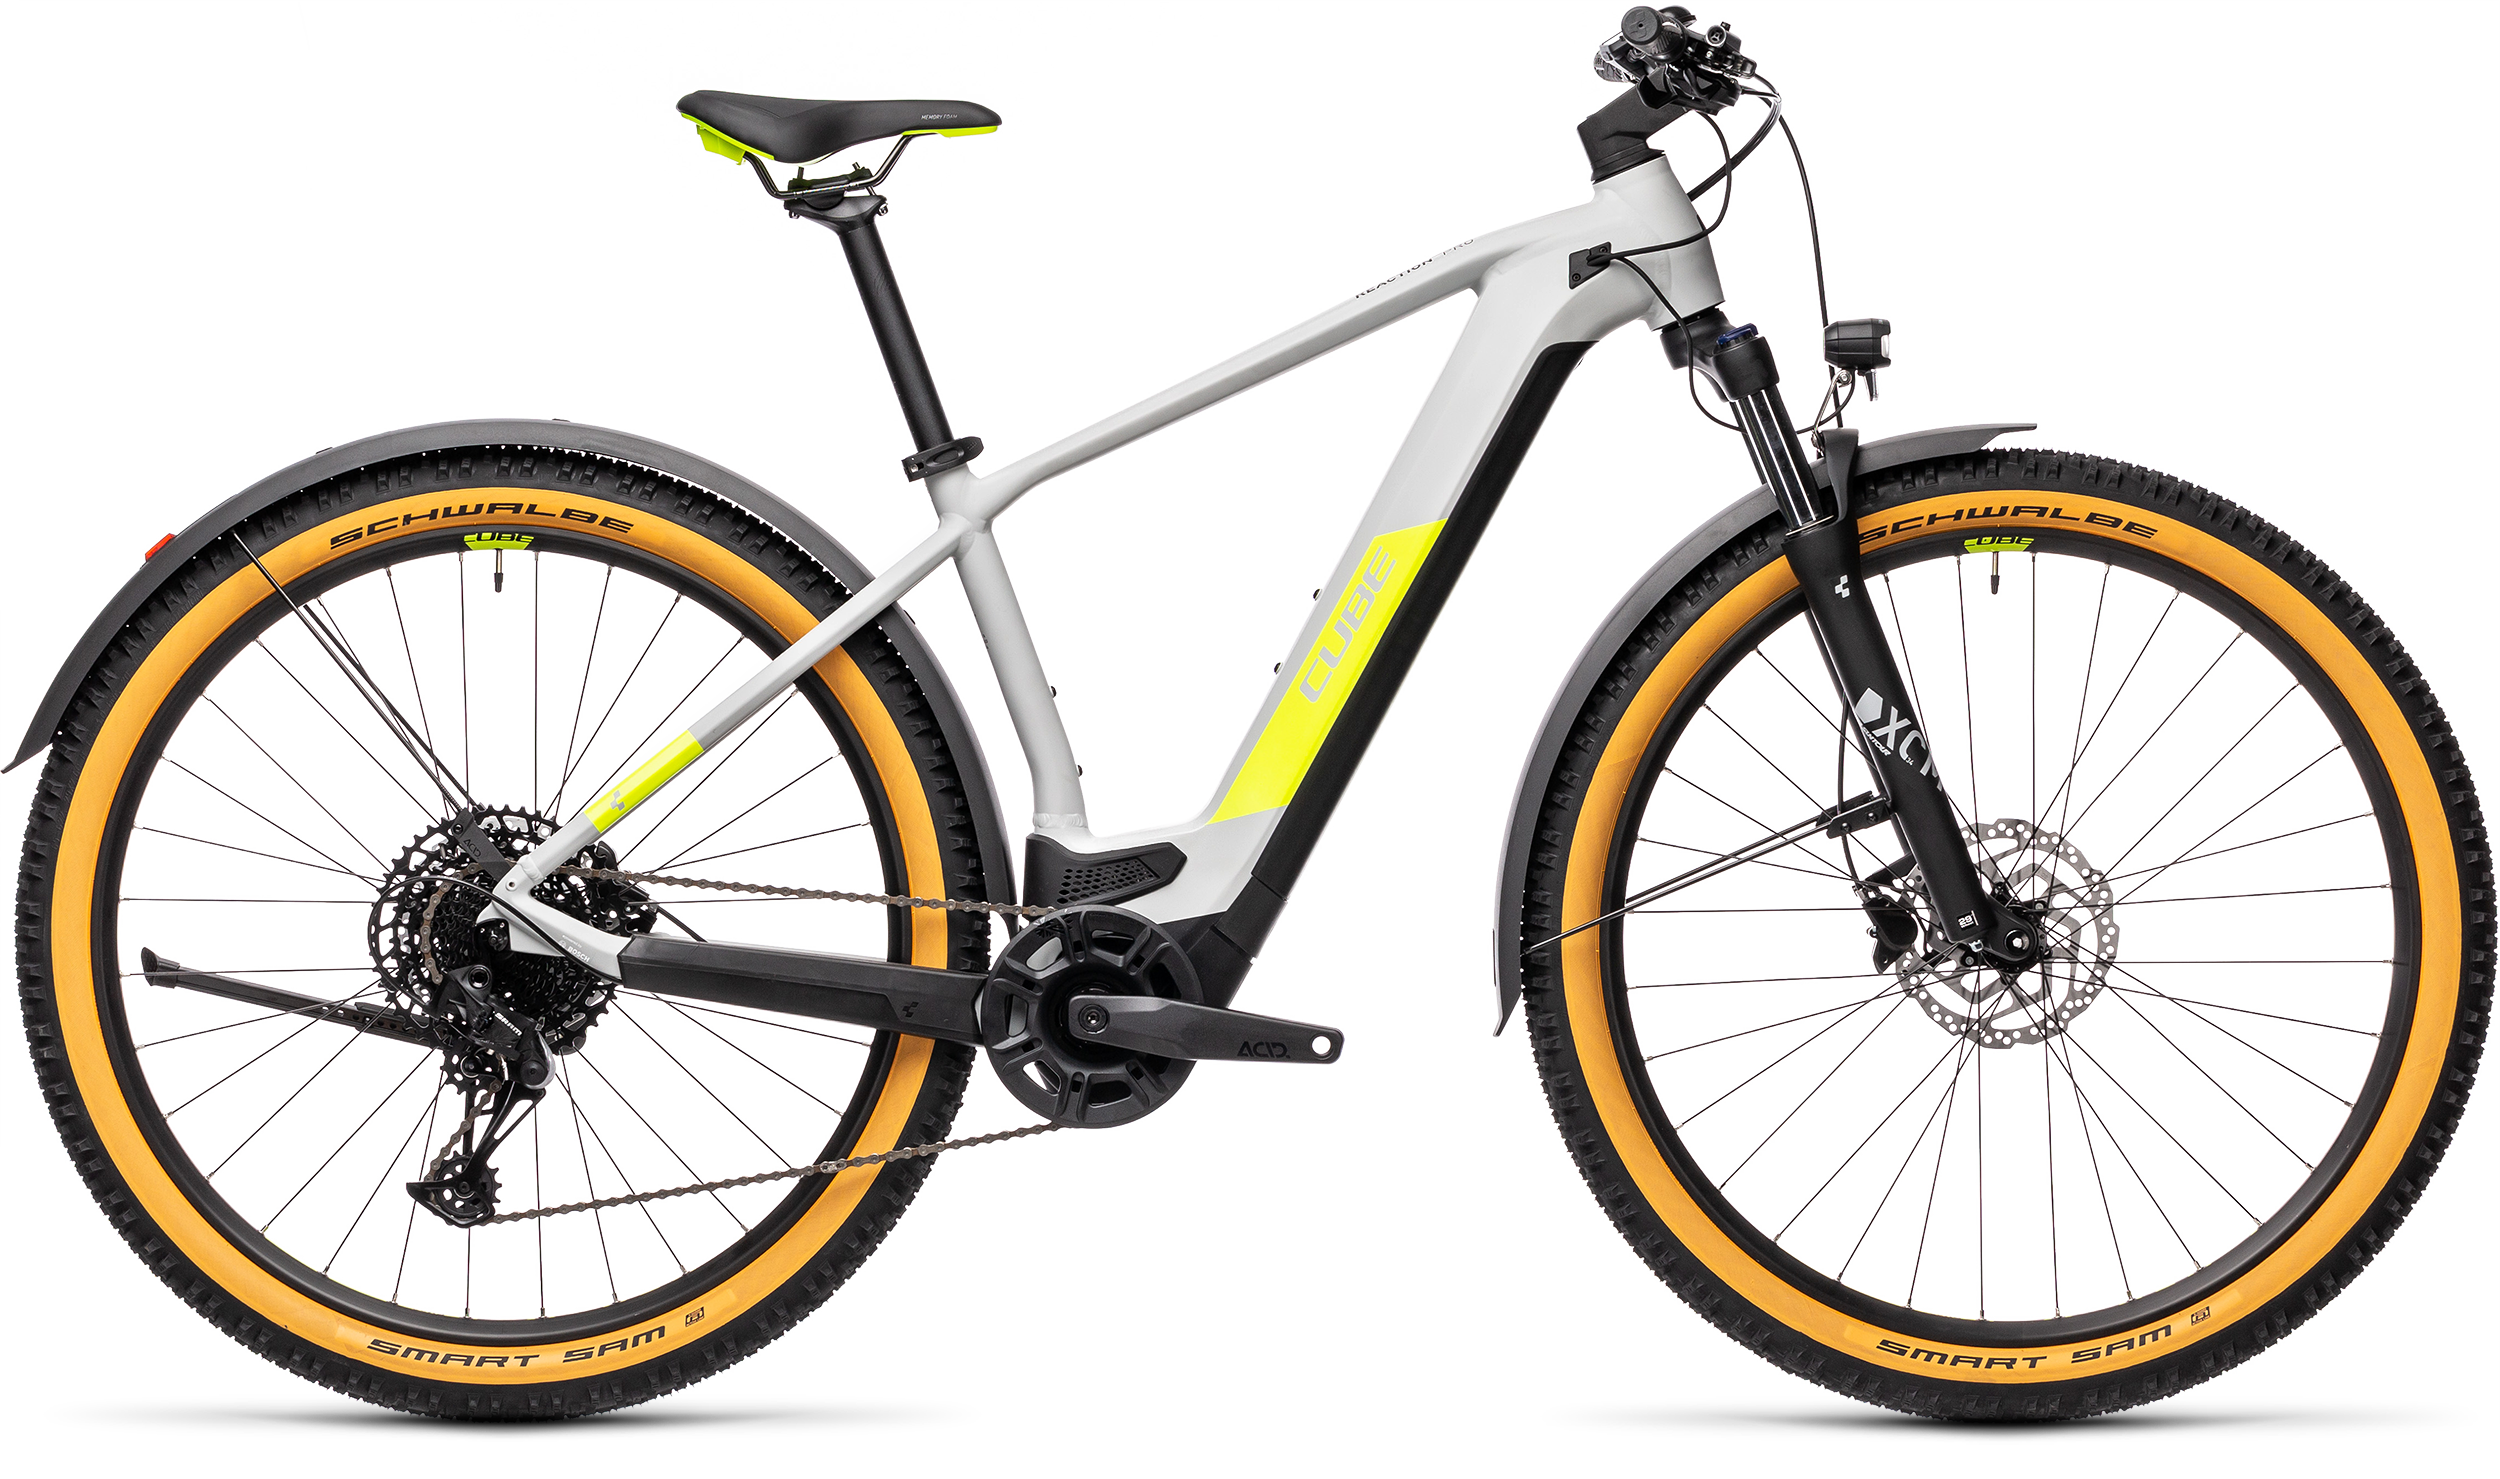 Cube Reaction Hybrid pro allroad